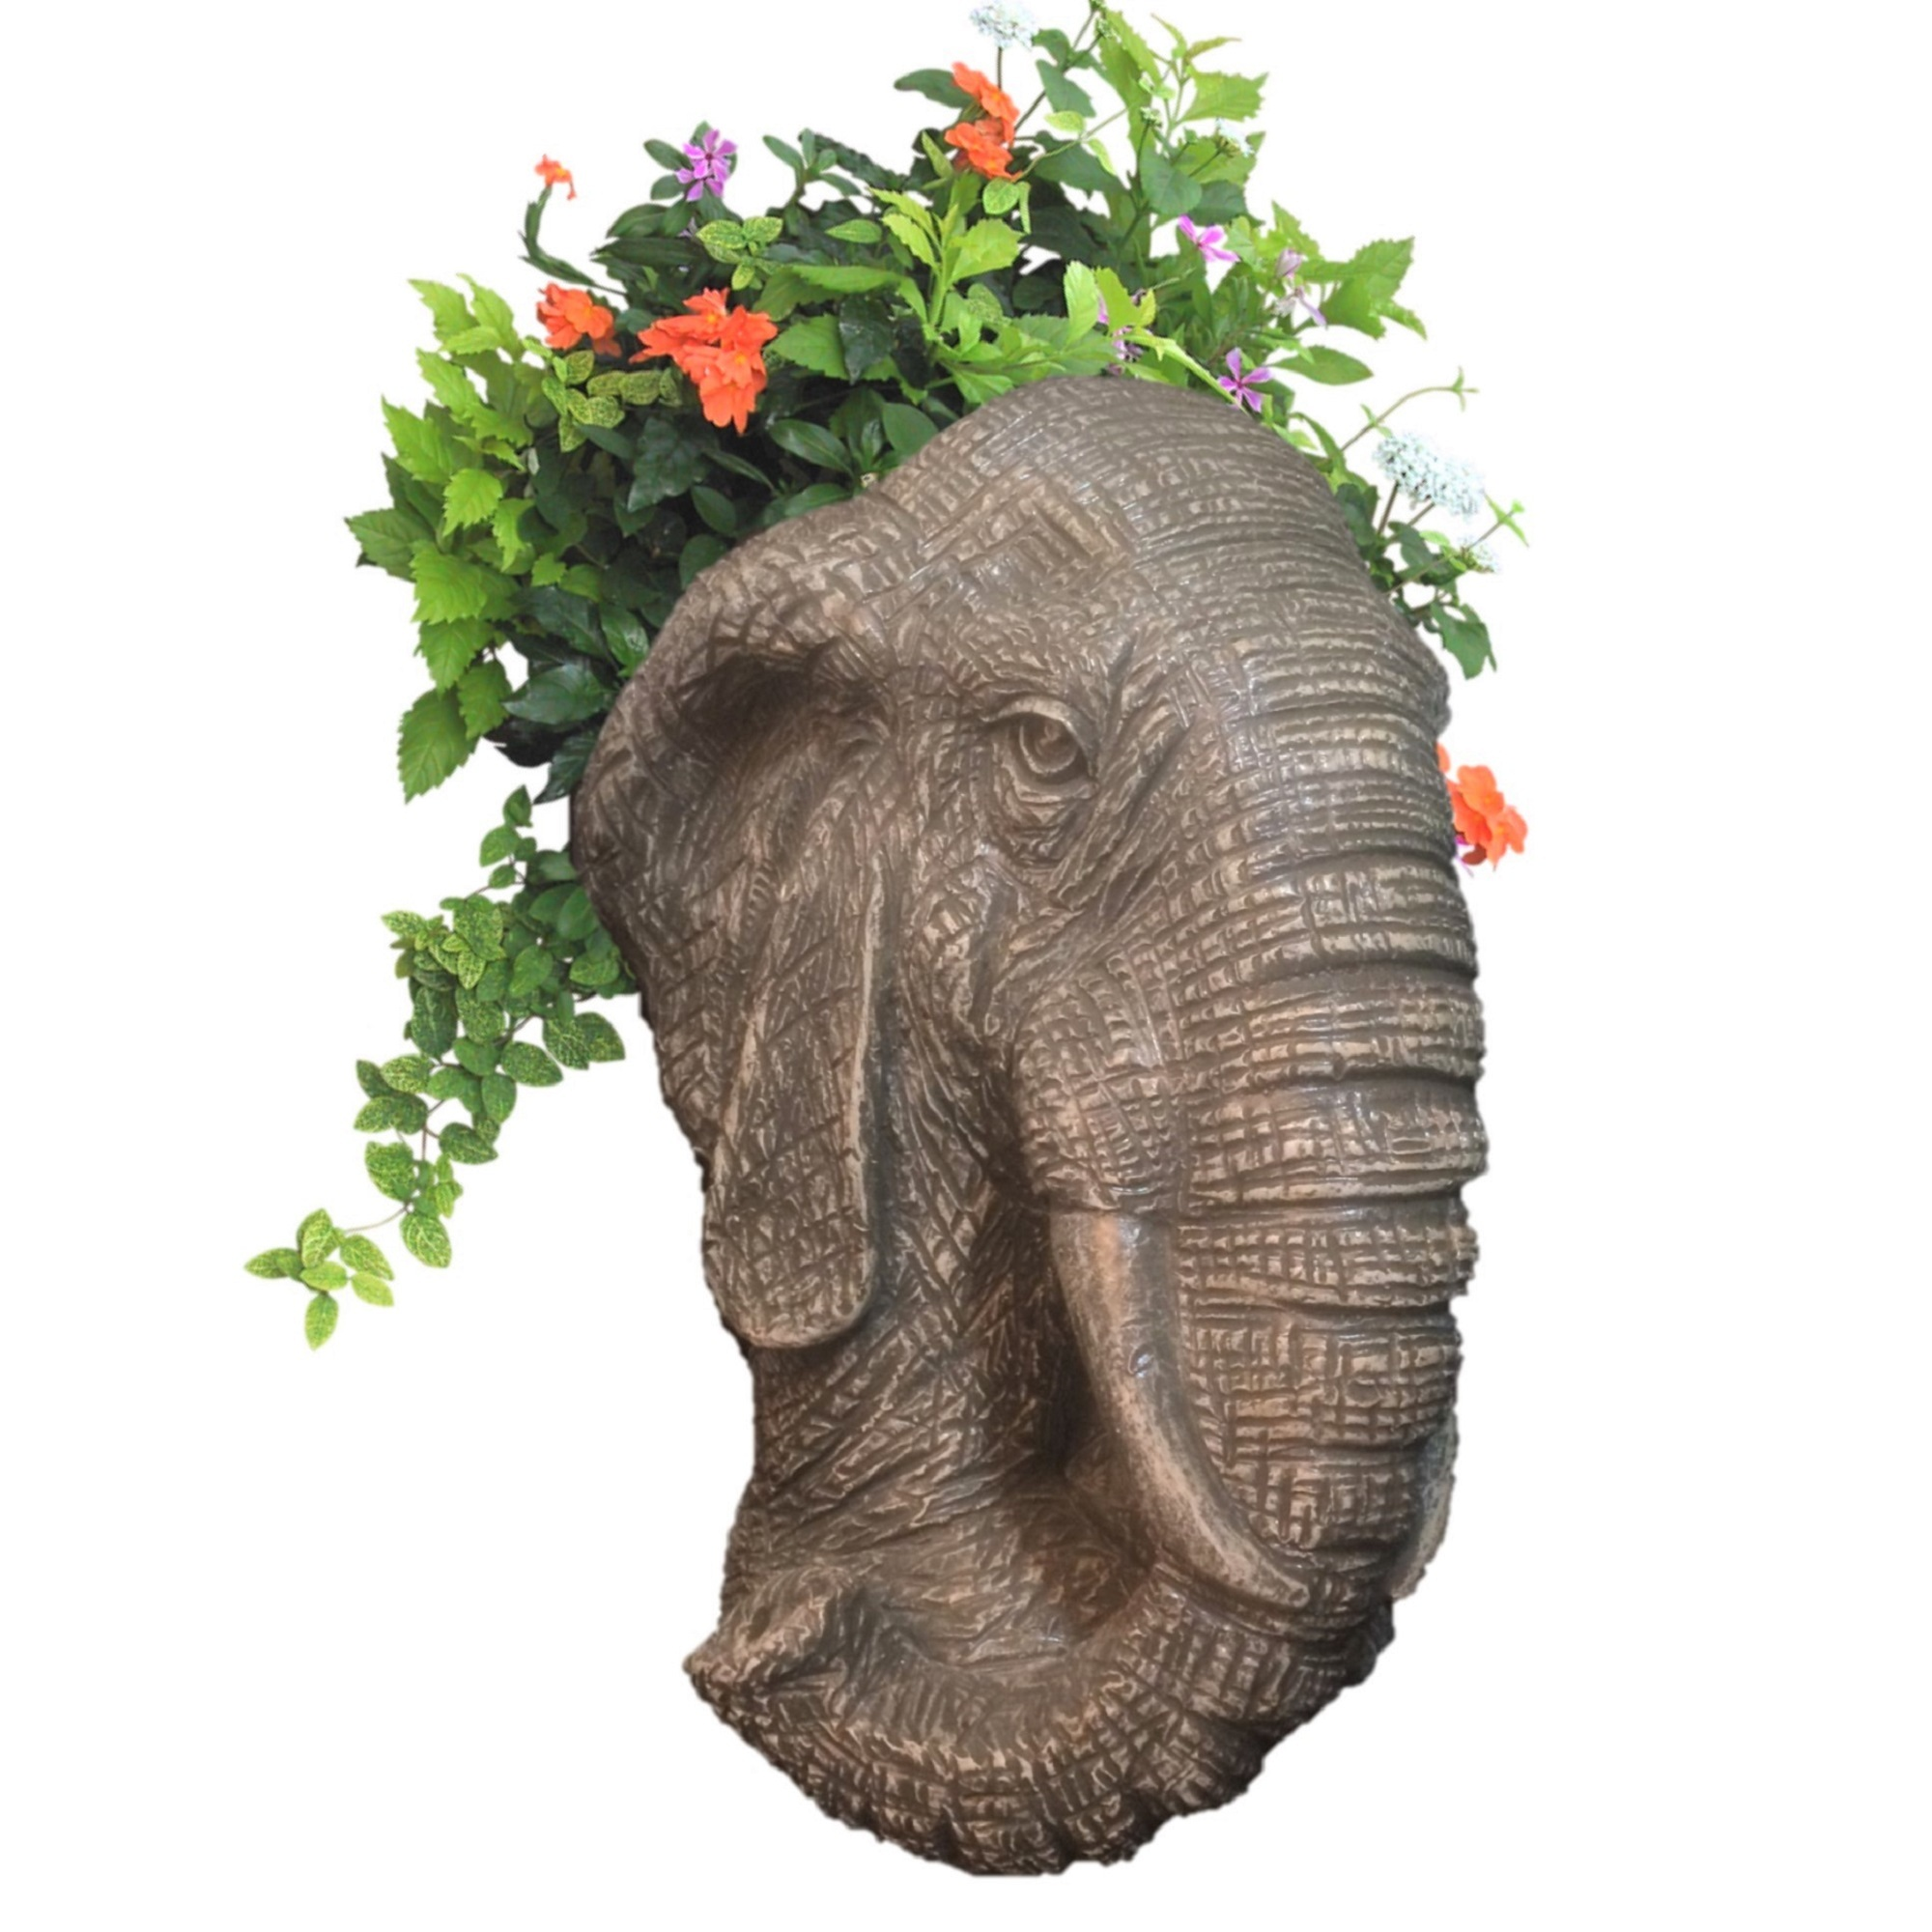 Homestyles Graystone Elephant Muggly Mascot Animal Statue Planter Pot